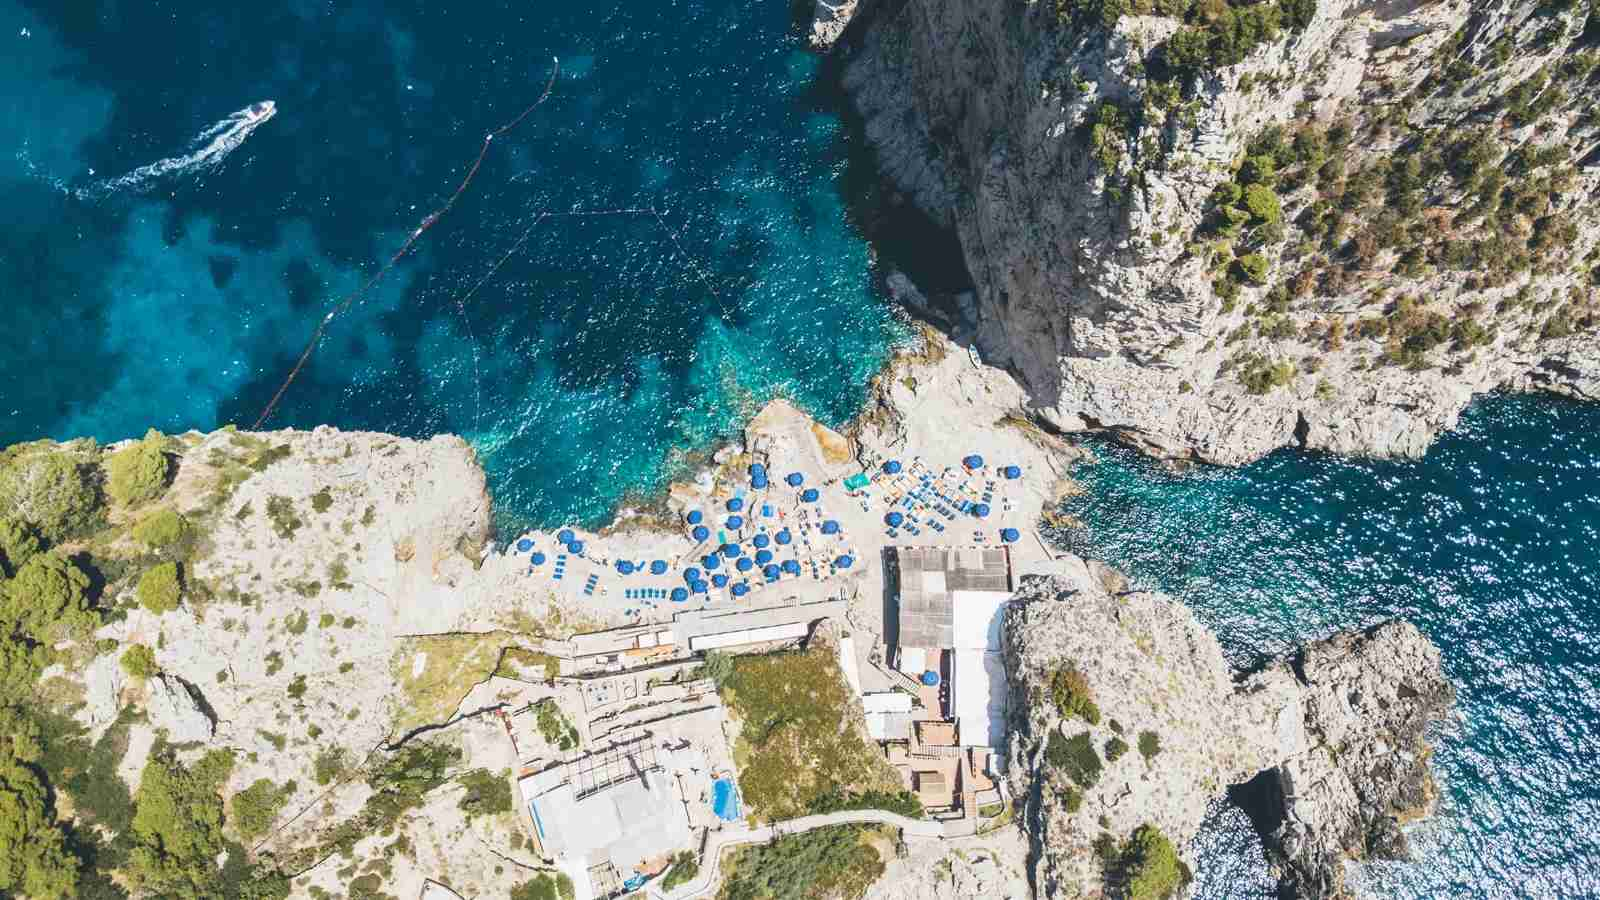 A Faraglioni rock beach in Capri, Italy. (Photo via Shutterstock)